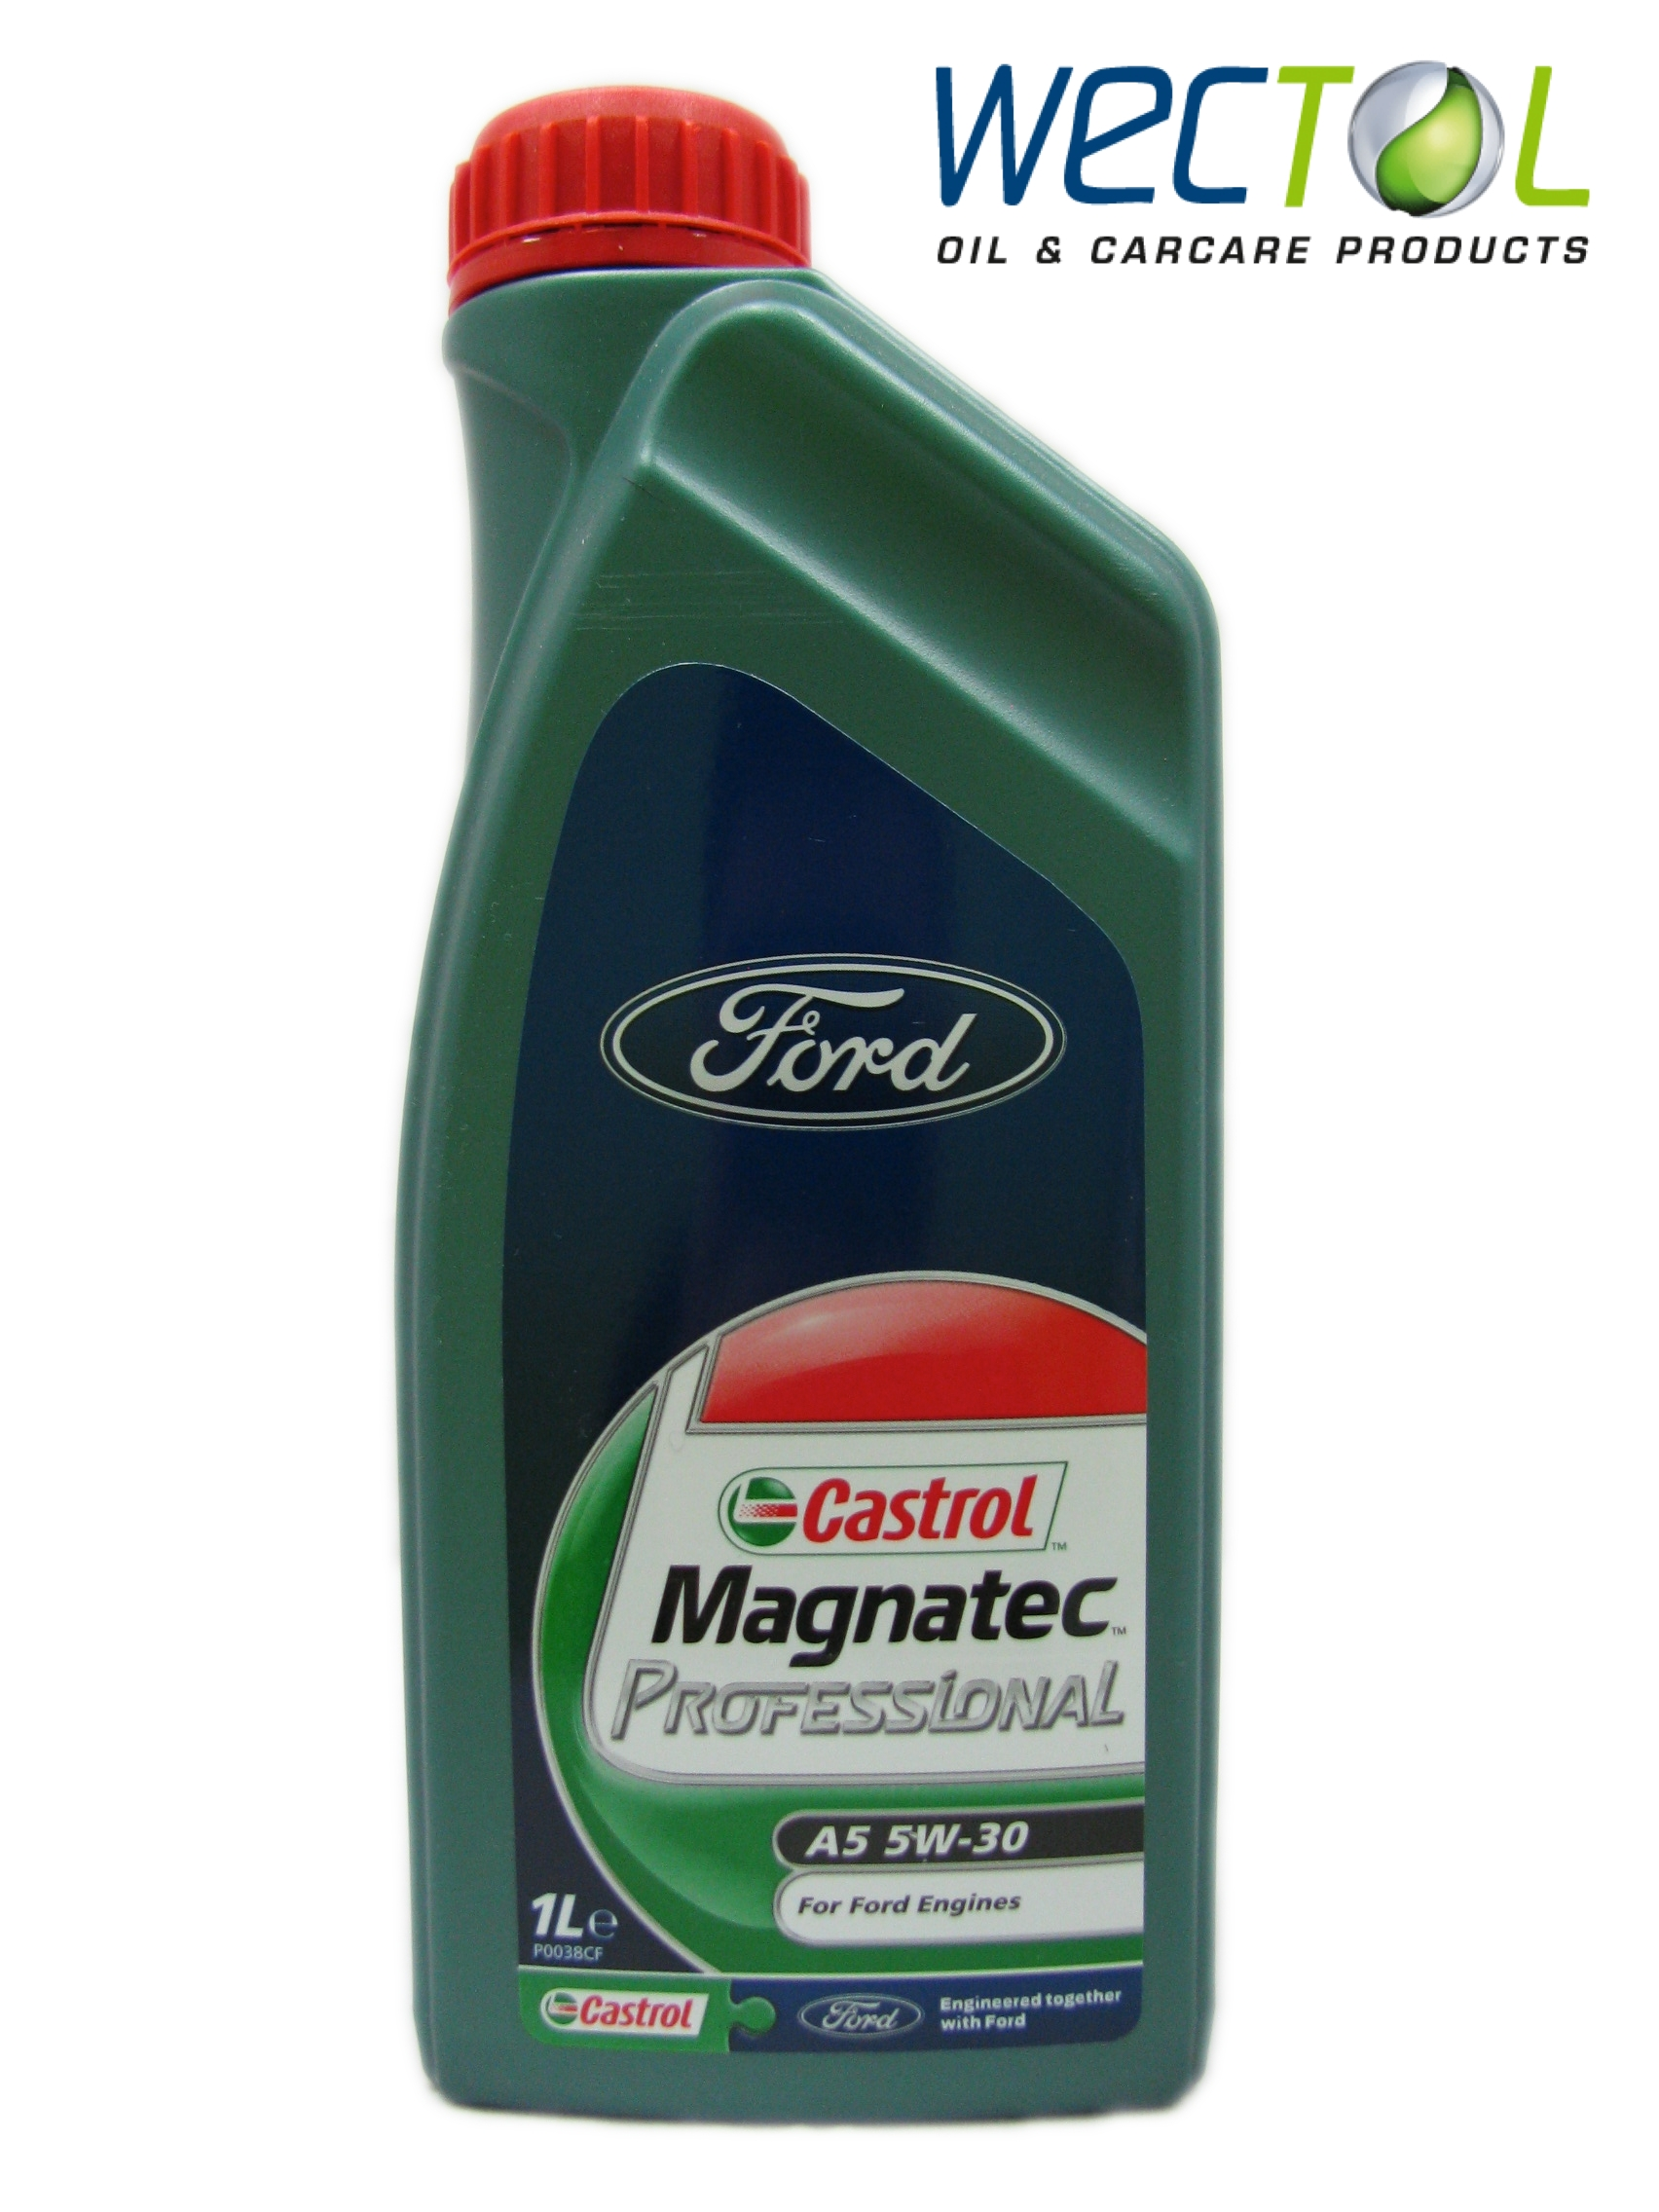 castrol magnatec professional ford a5 5w 30 motor l 5w30. Black Bedroom Furniture Sets. Home Design Ideas